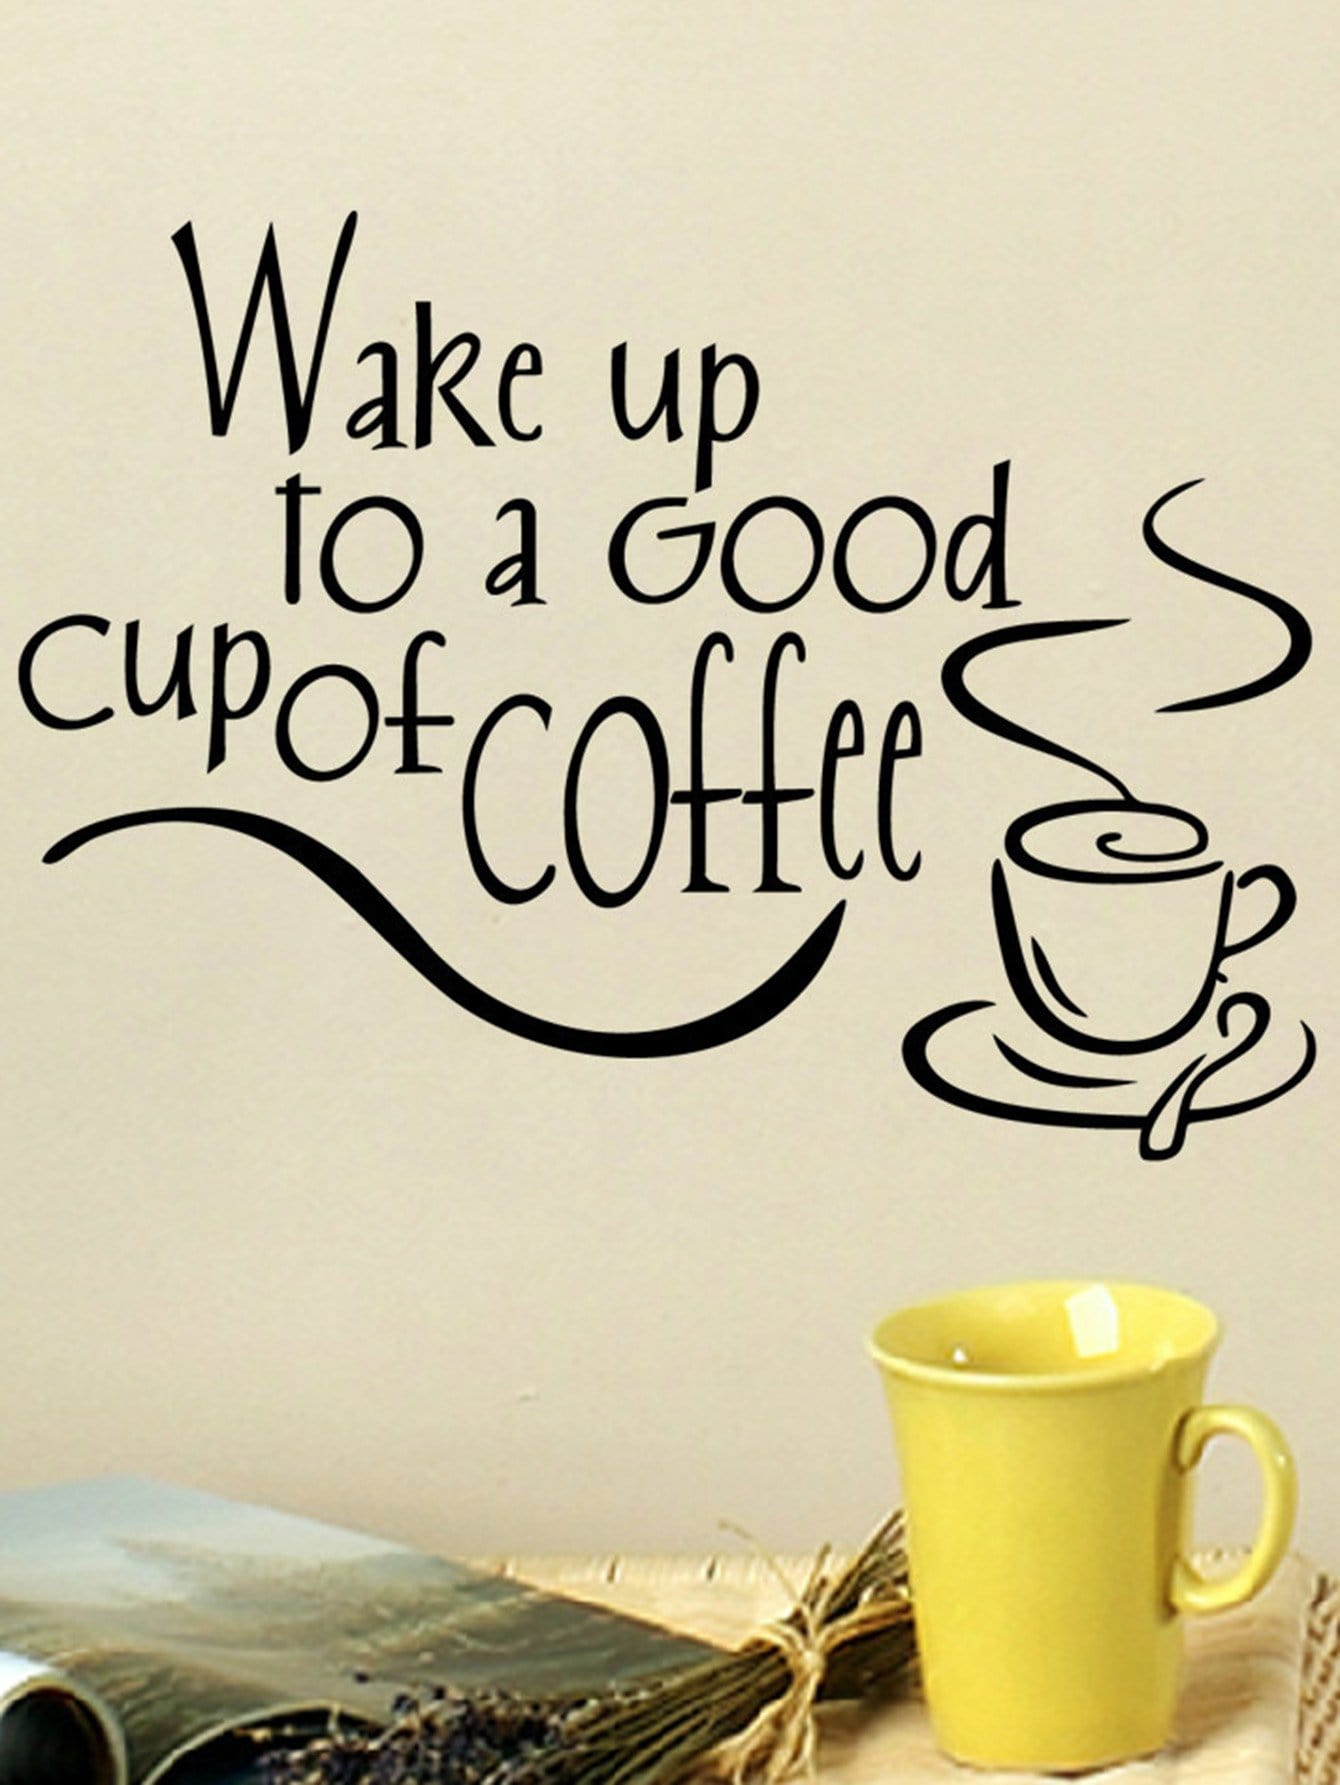 Фото Coffee & Slogan Wall Decal family wall quote removable wall stickers home decal art mural